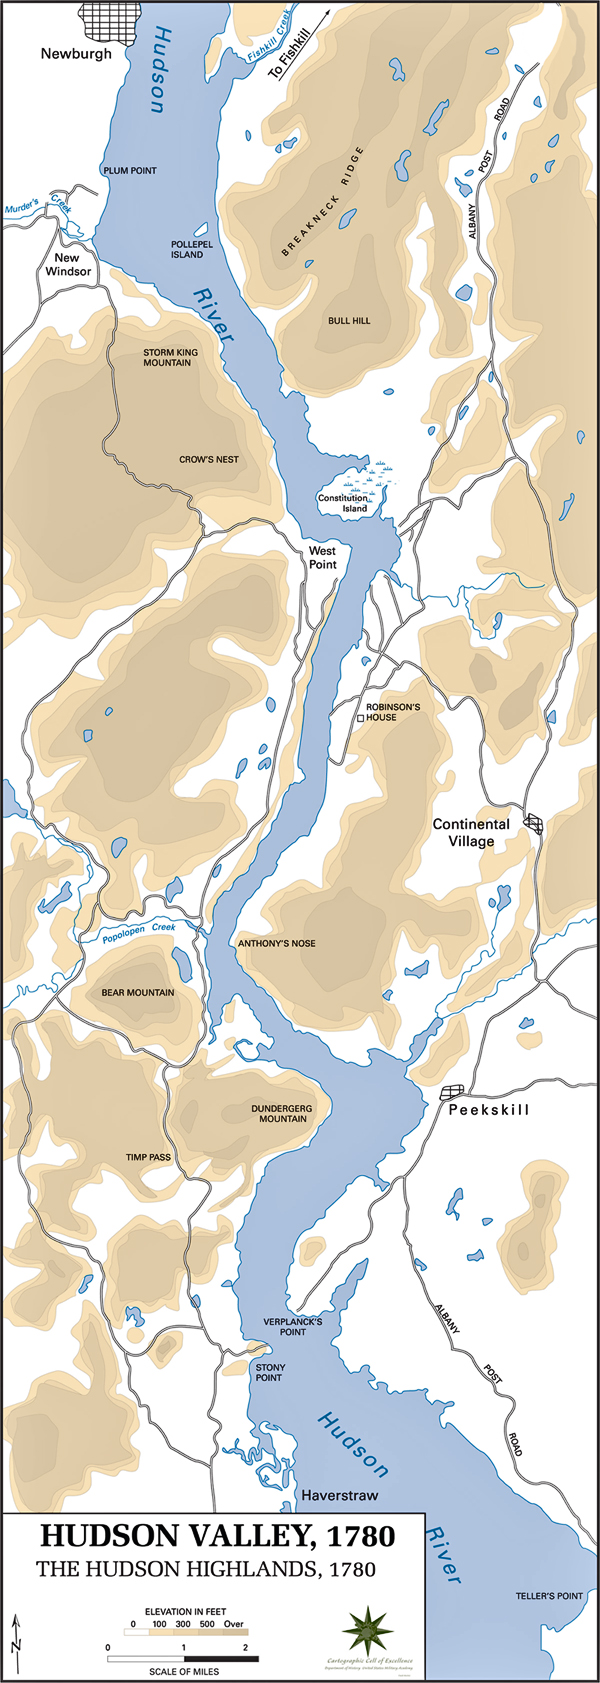 of the Hudson Highlands 1780